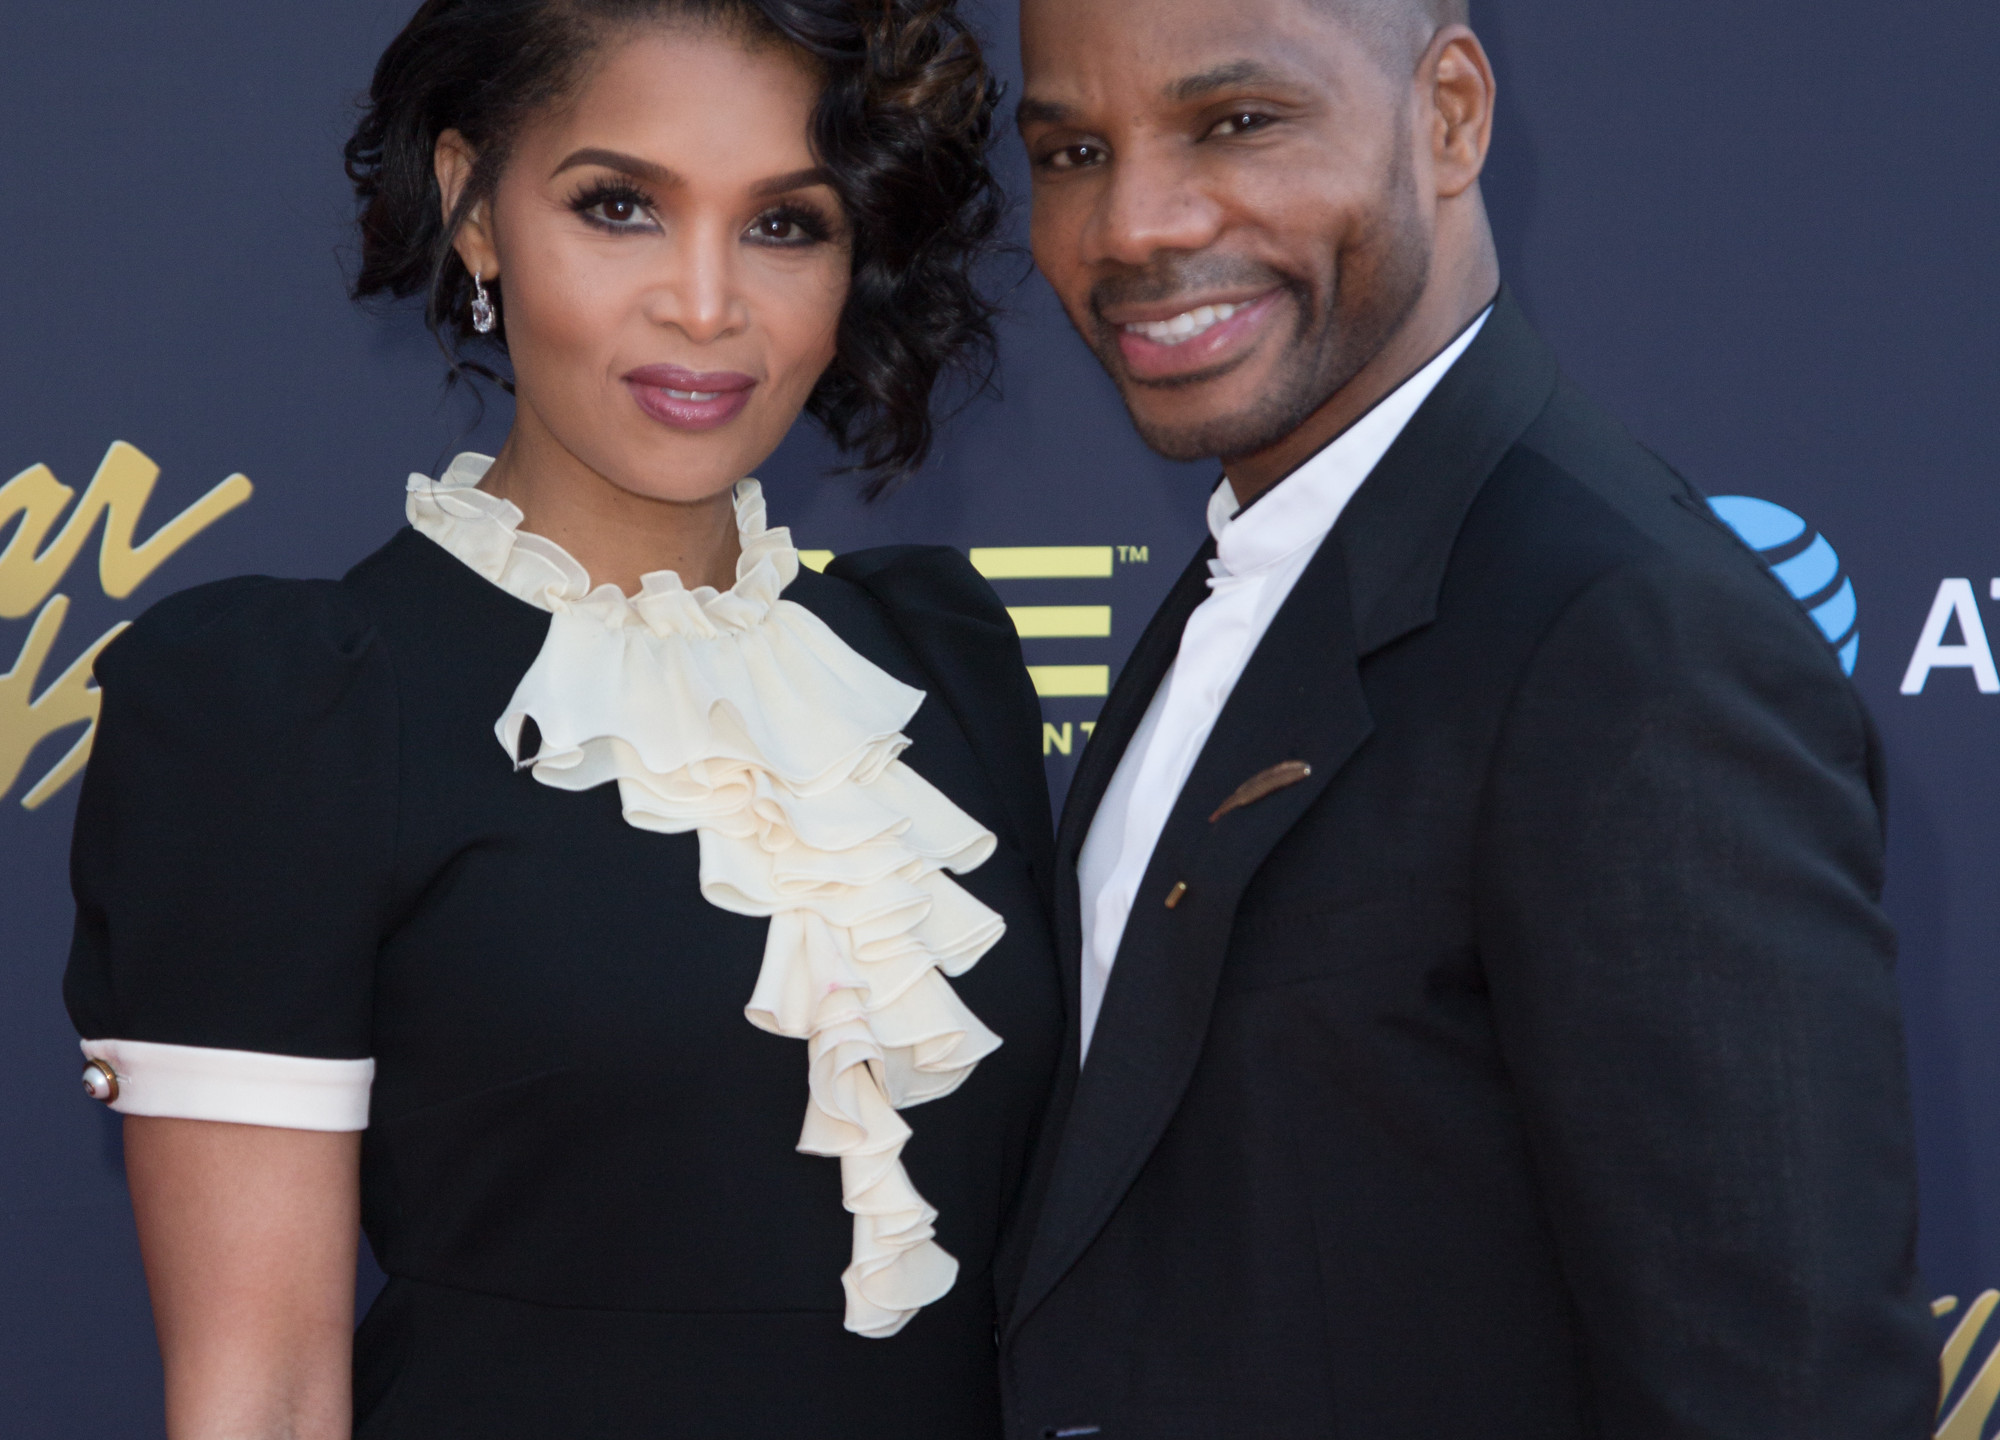 Tammy Franklin and Kirk Franklin on carpet by Maury Phillips